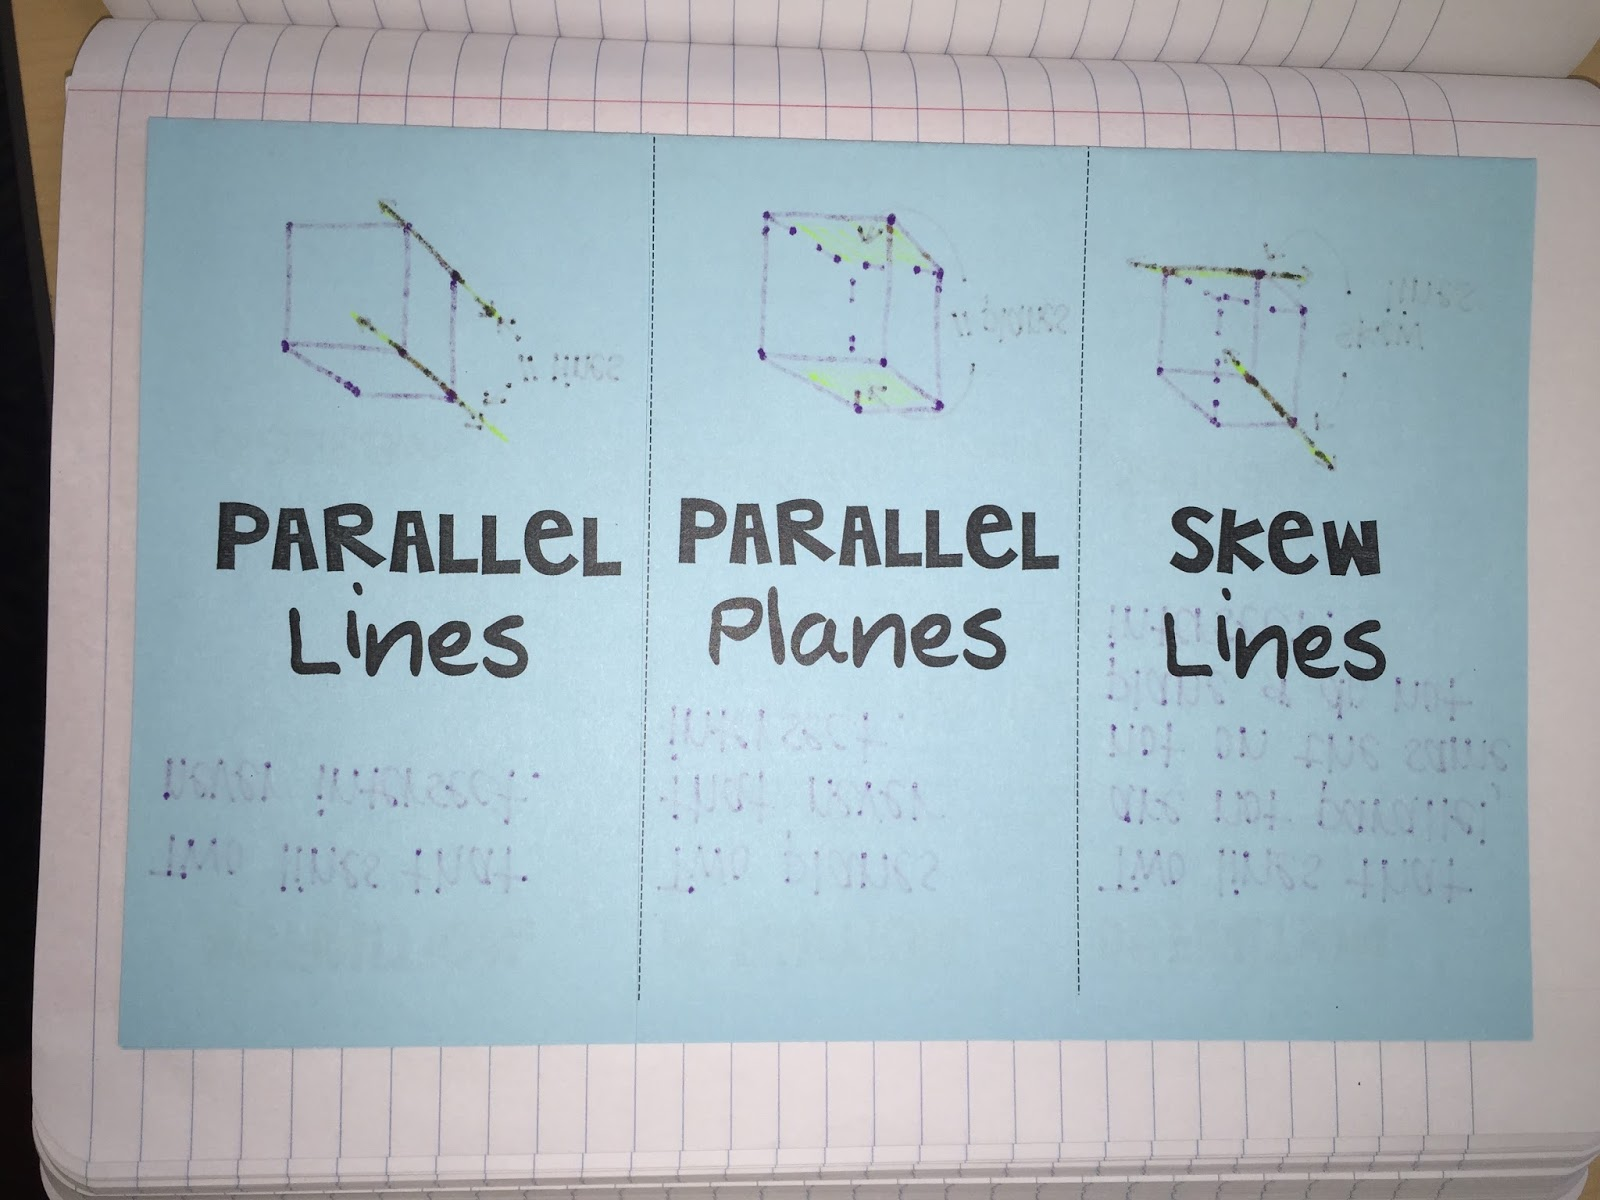 This is a newly created foldable that I am planning to use with Mrs.  Atwood's activity for introducing parallel lines, skew lines, and parallel  planes.